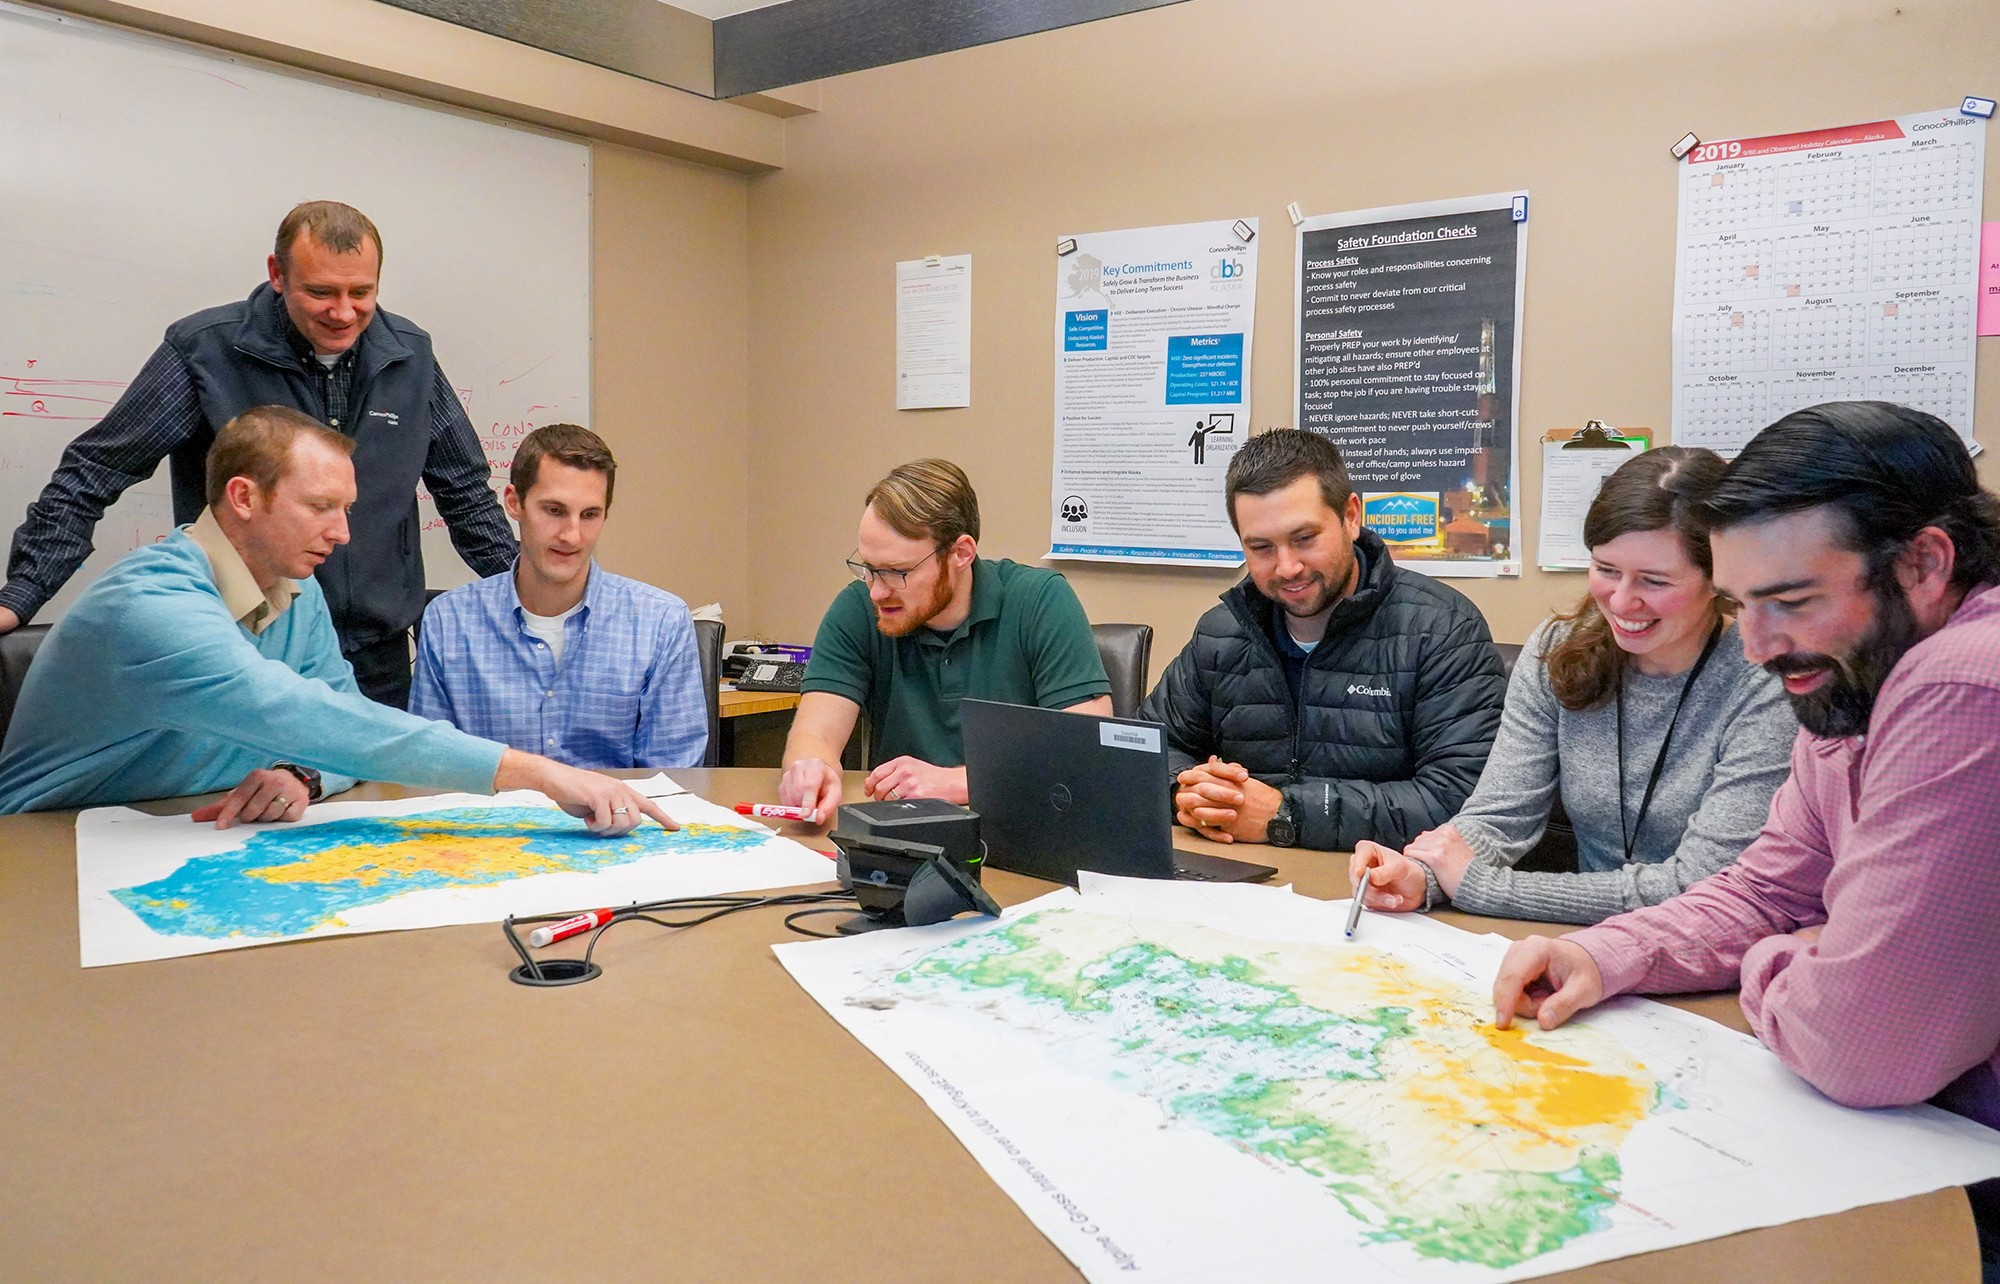 Seven people in conference room looking at maps